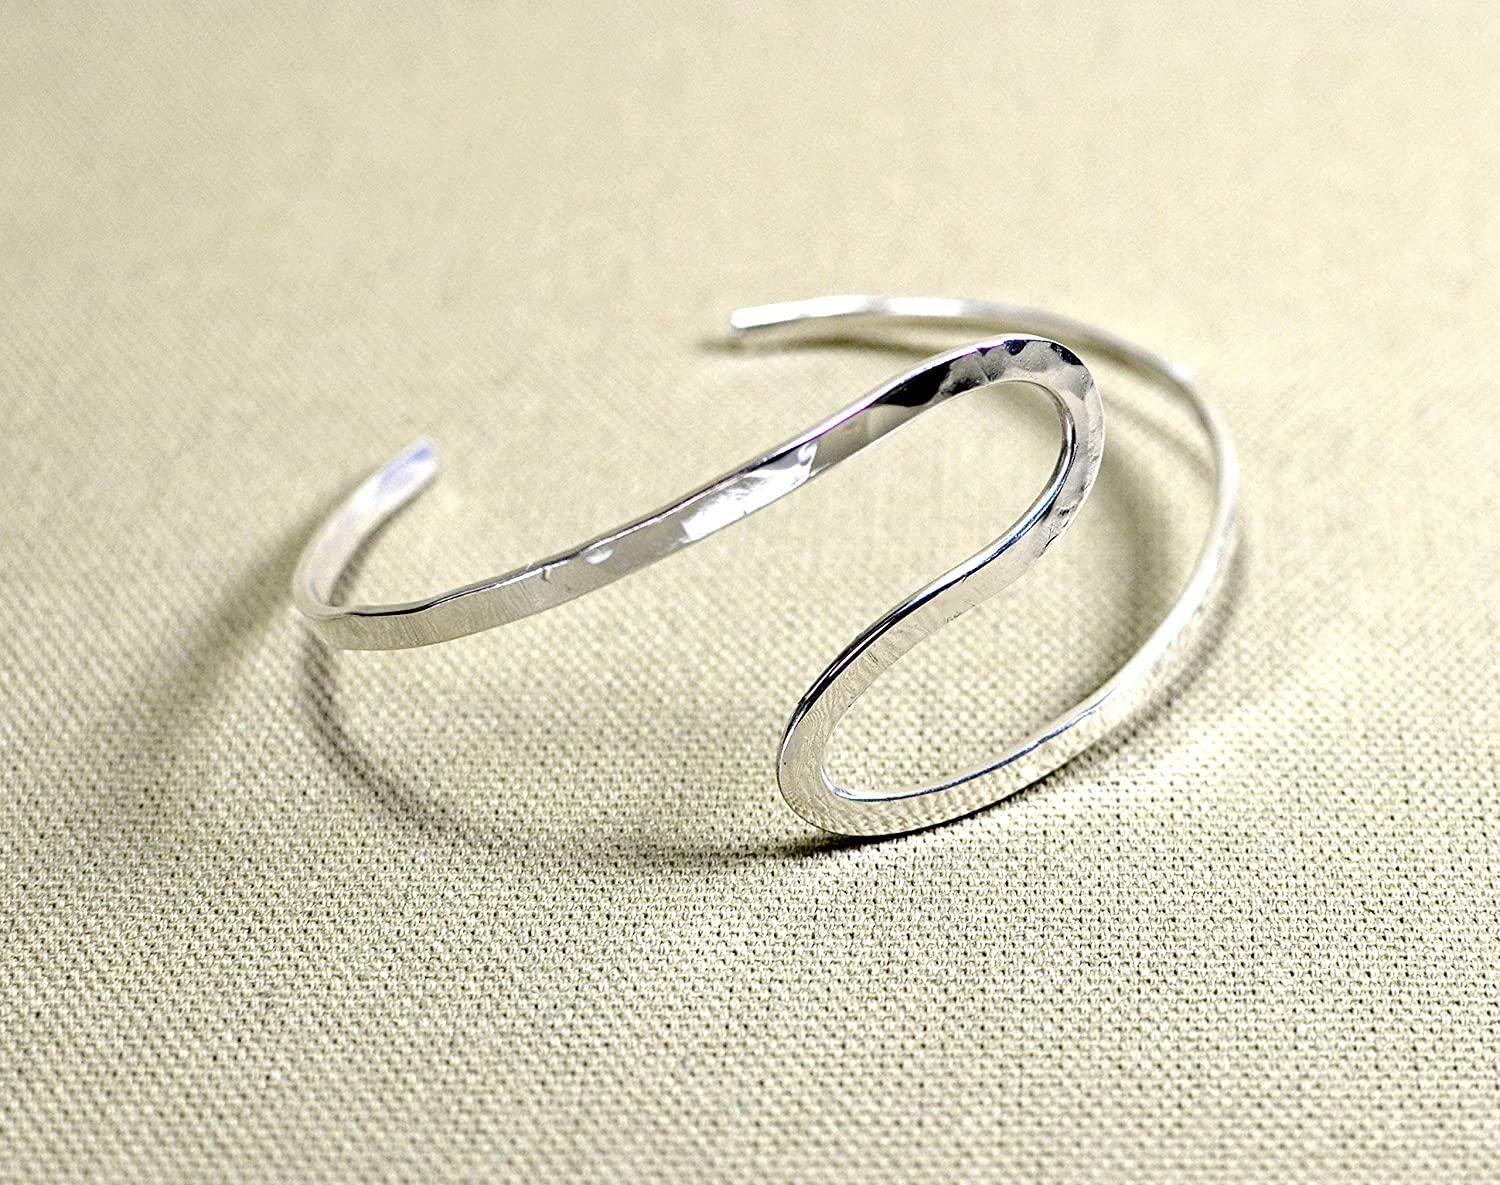 In a popularity Forged handmade artistic sterling cuff silver Regular store arm